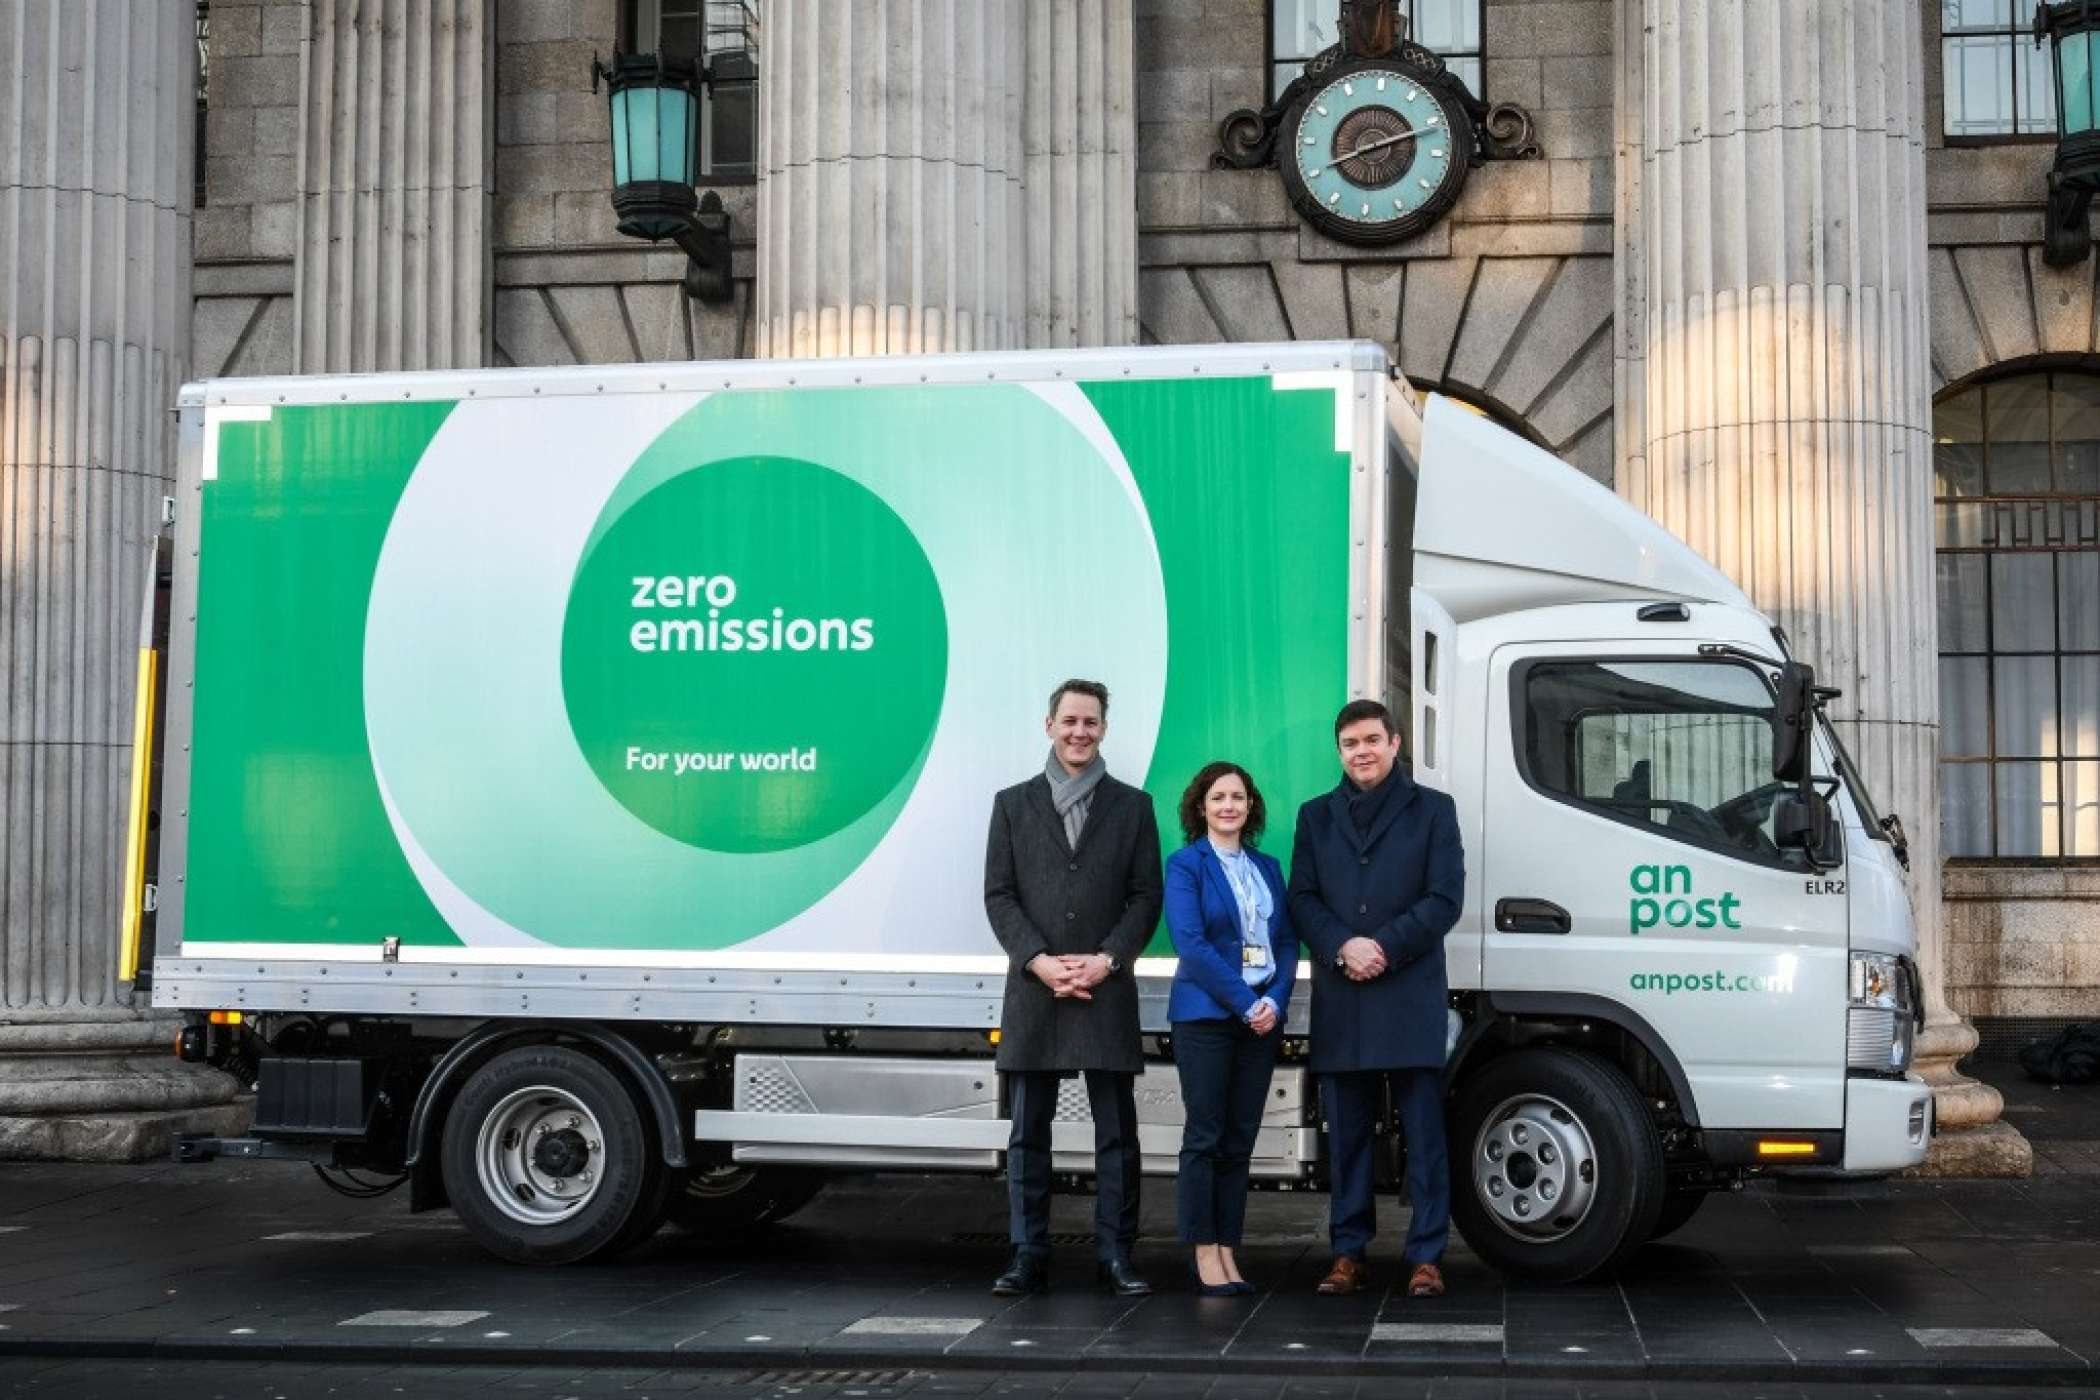 Geben Strom (von links): Robertino Renz; Regional Marketing & Sales Manager FUSO Europe; Olive Kiely; Head of Business Support, Transport & Network An Post und Gerard Rice; Managing Director FUSO Ireland at the GPO, O'Connell Street Lower, Dublin. | Foto: Daimler